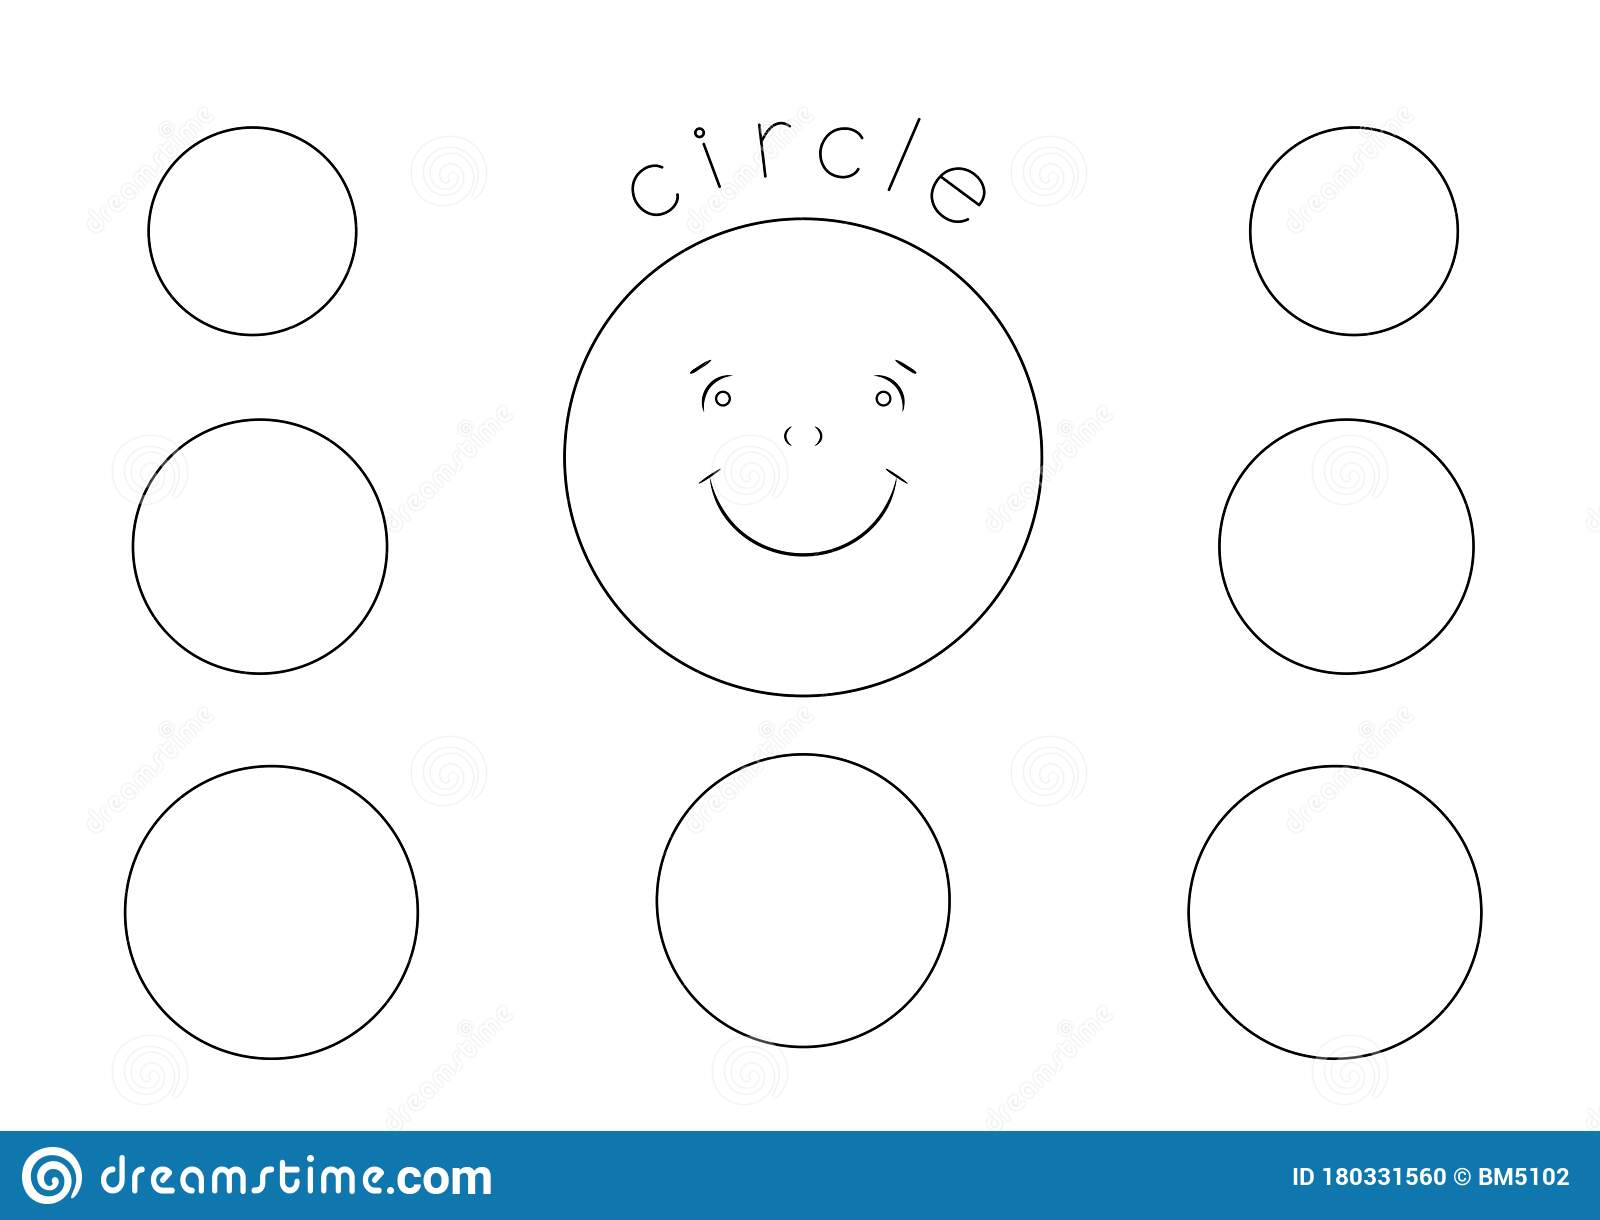 circle shape coloring for kids outline drawing stock illustration of line basic shapes coloring pages Circle Coloring Page